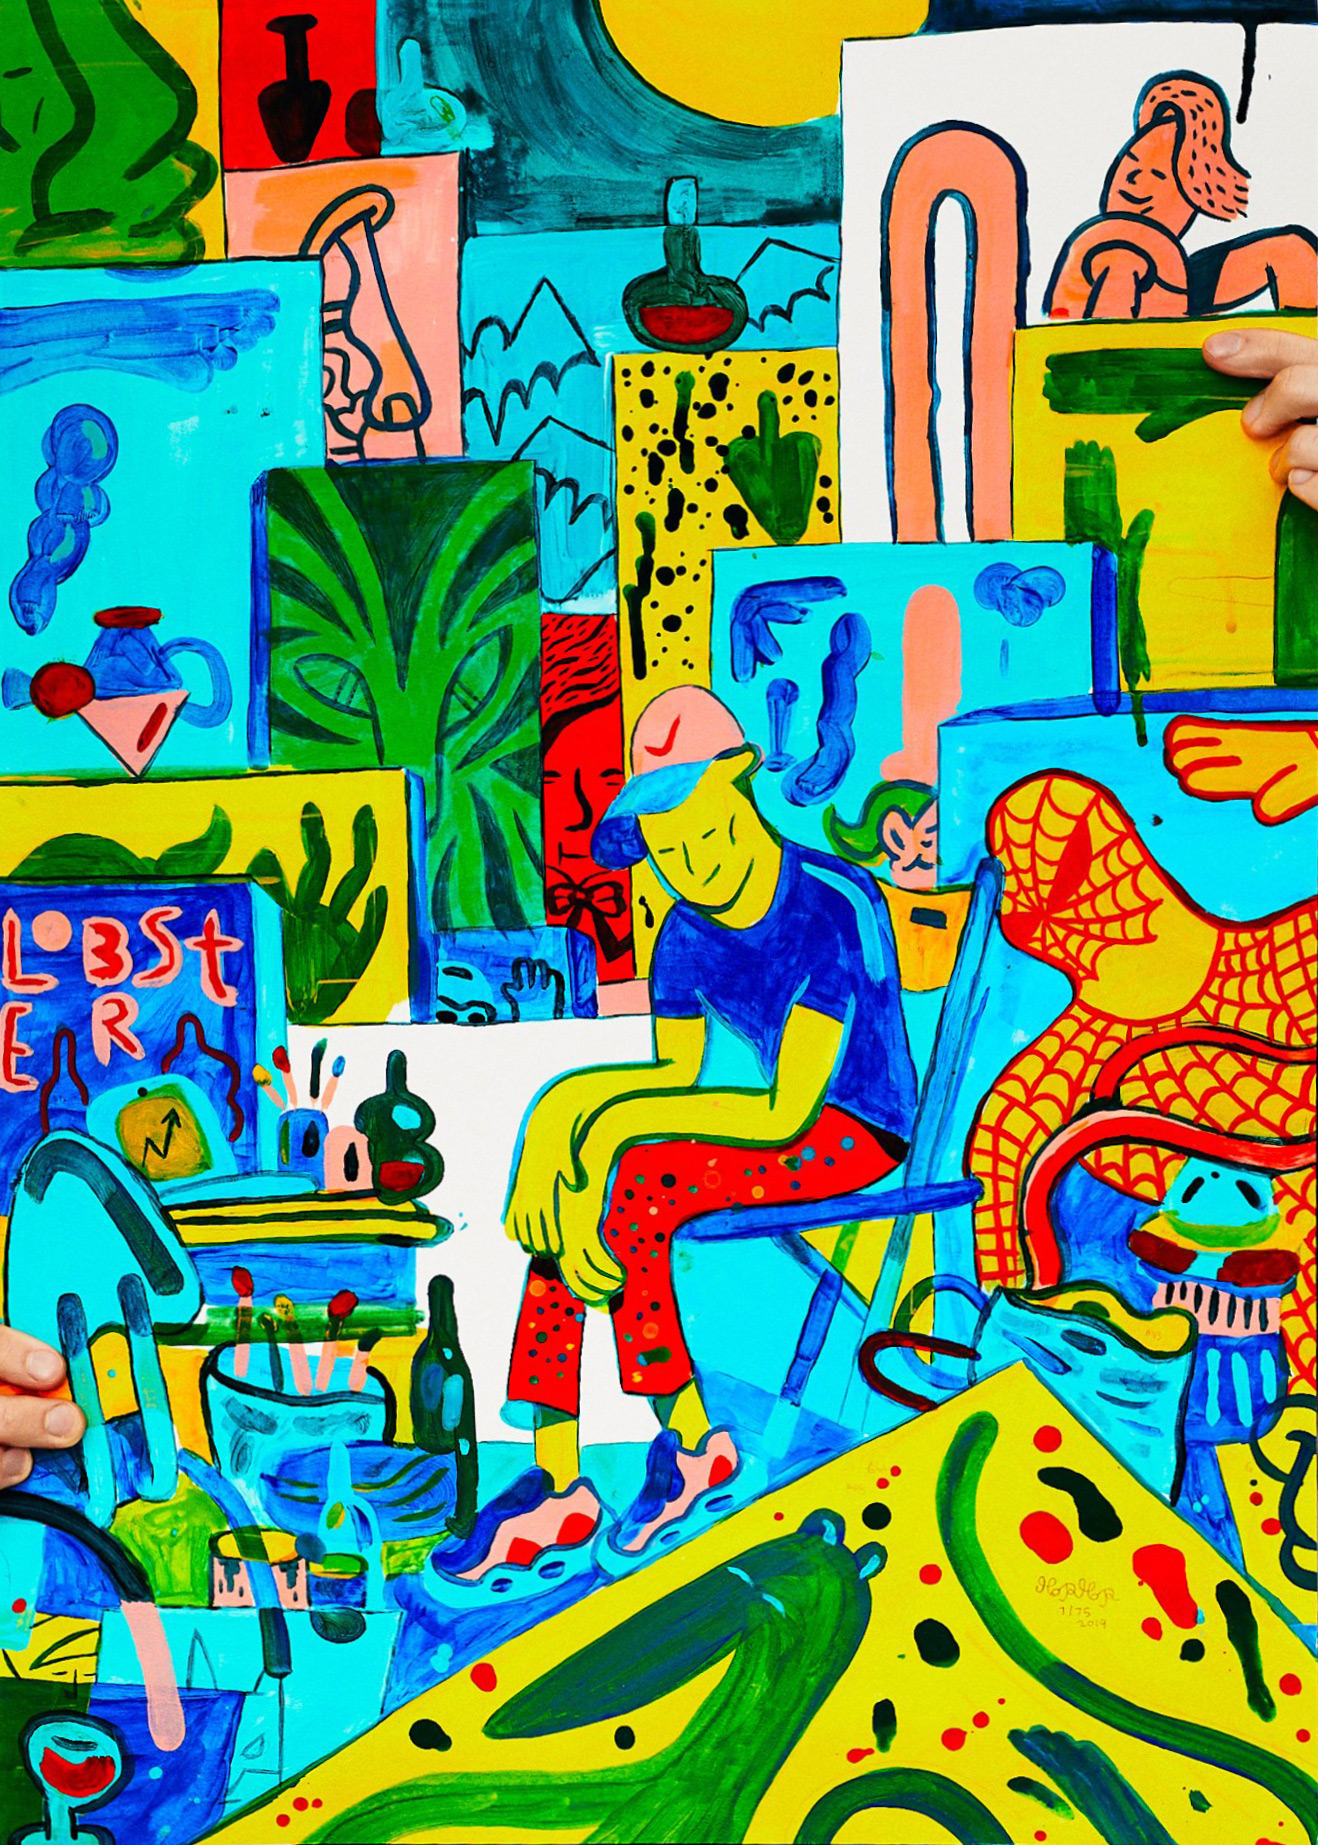 posters-prints, giclee-print, figurative, graphical, pop, portraiture, animals, bodies, cartoons, humor, wildlife, blue, green, pink, turquoise, yellow, acrylic, paper, amusing, boys, buildings, cars, danish, interior, interior-design, kids, modern, modern-art, Buy original high quality art. Paintings, drawings, limited edition prints & posters by talented artists.